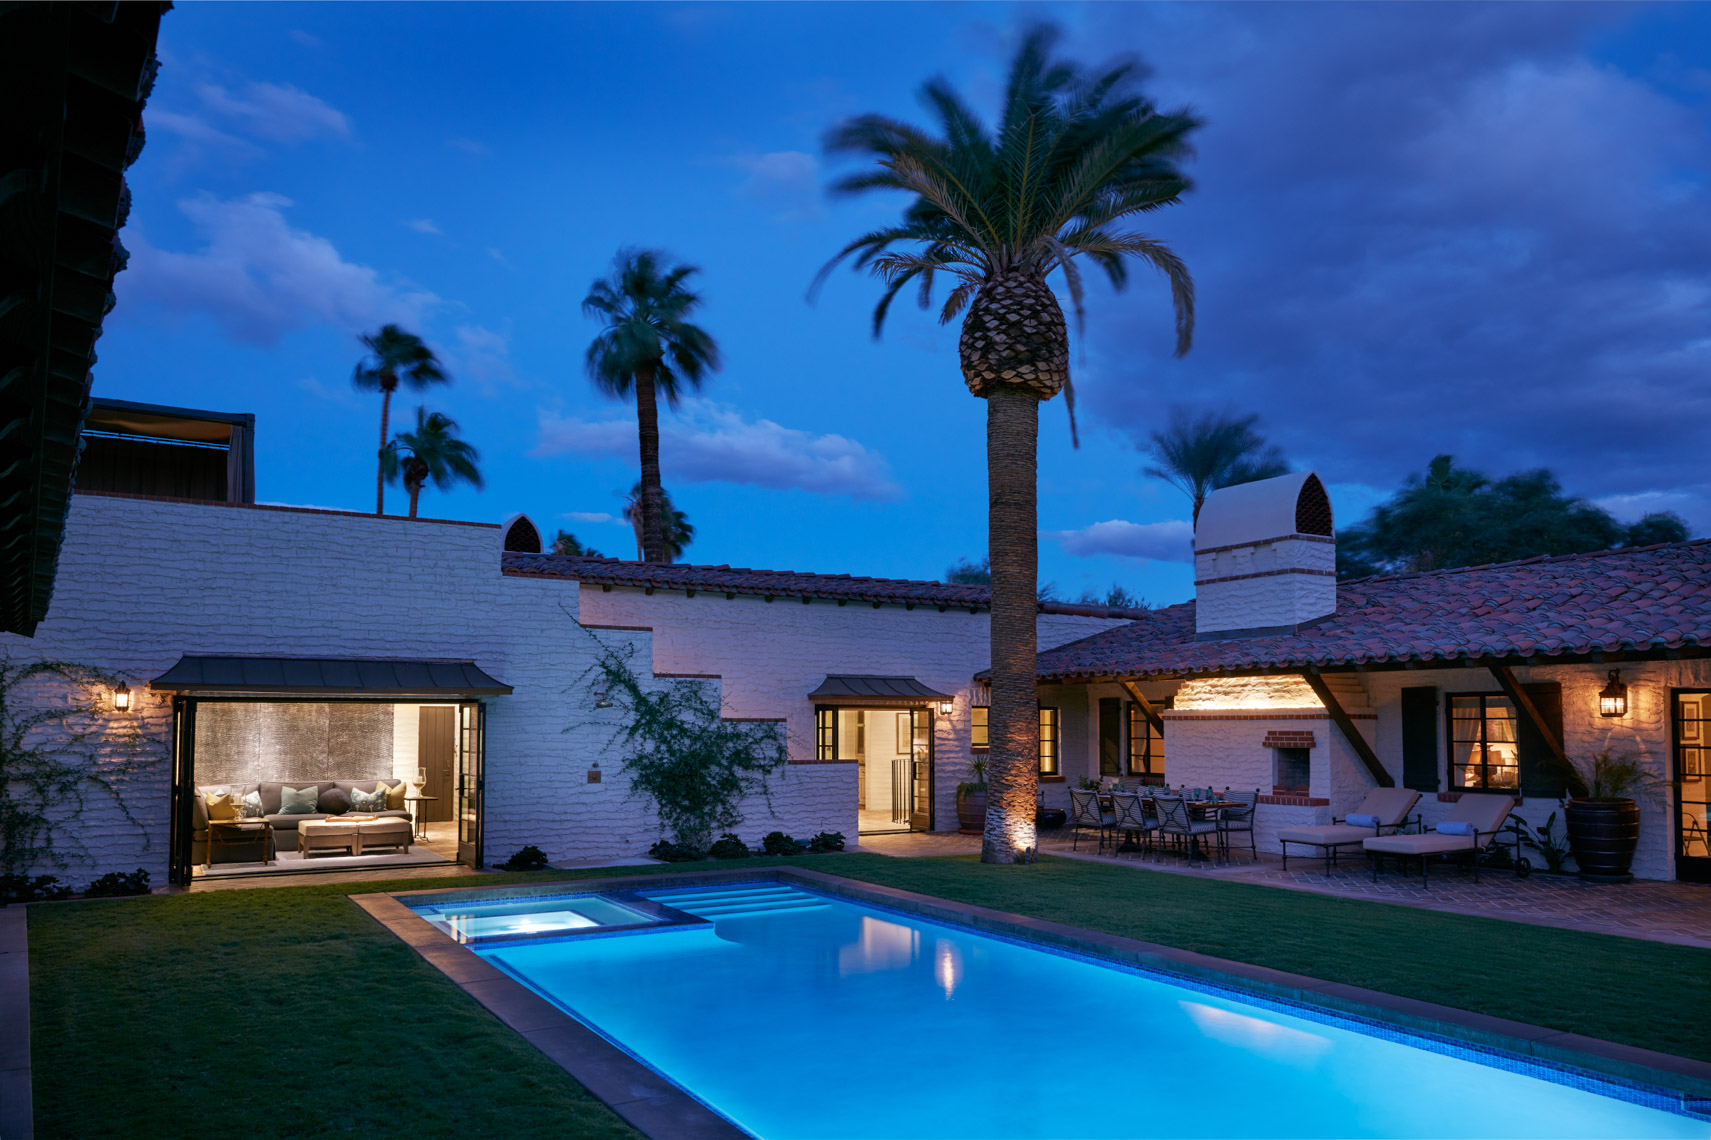 Blue pool at dusk with palm trees and courtyard